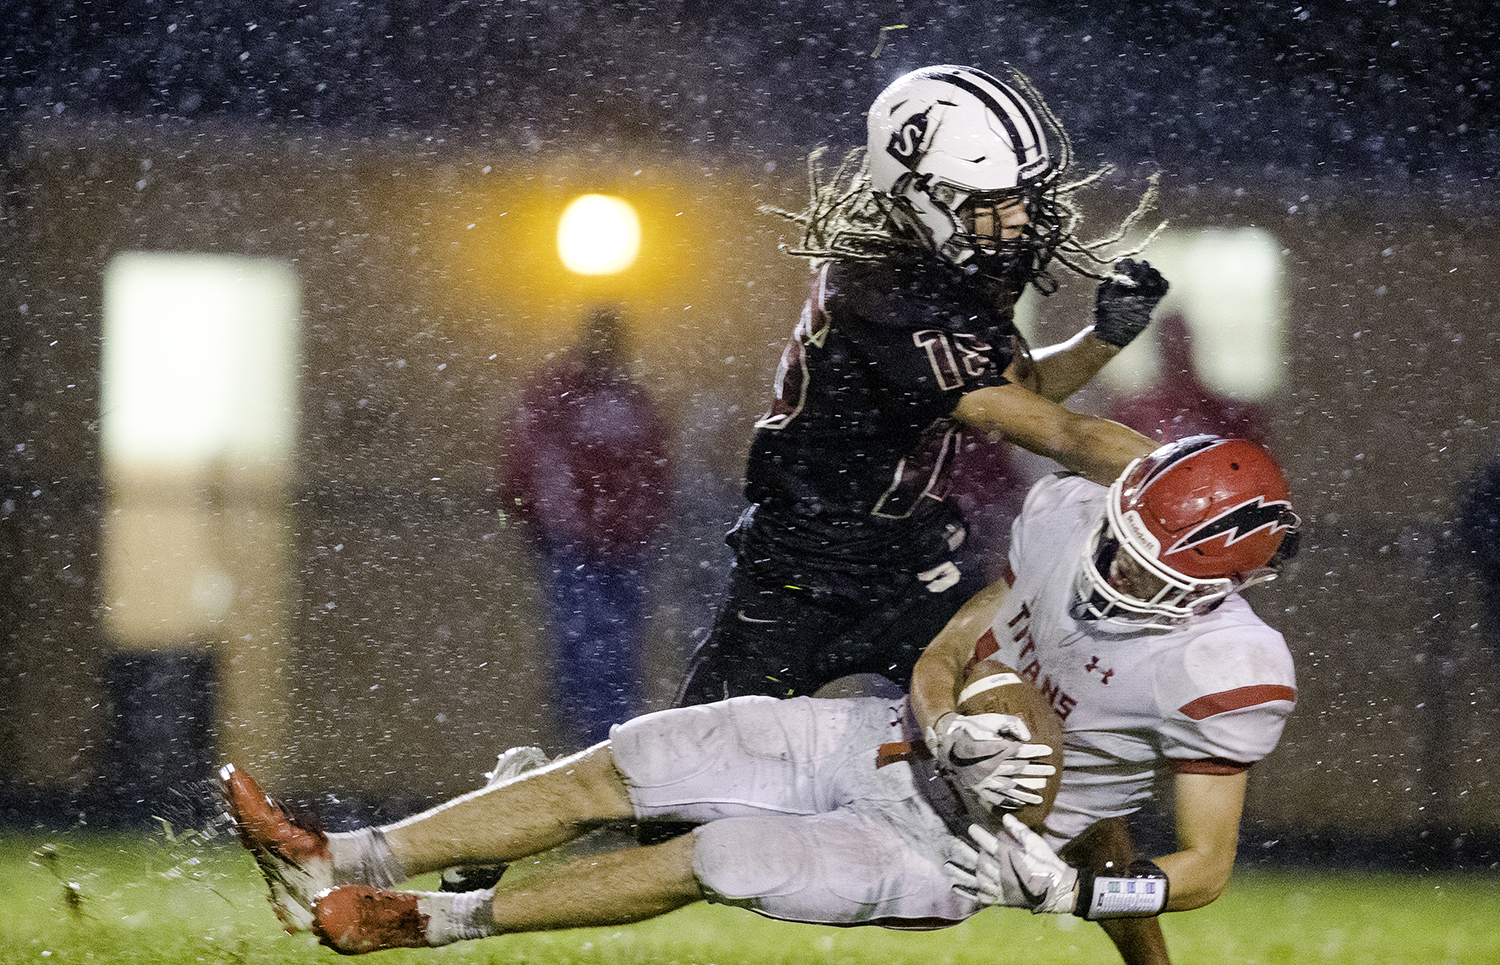 Springfield's Xavier Cooper knocks Glenwood's Tyler Burris to the ground after he made a reception in the first half at Memorial Stadium Friday, Sept. 7, 2018. [Ted Schurter/The State Journal-Register]